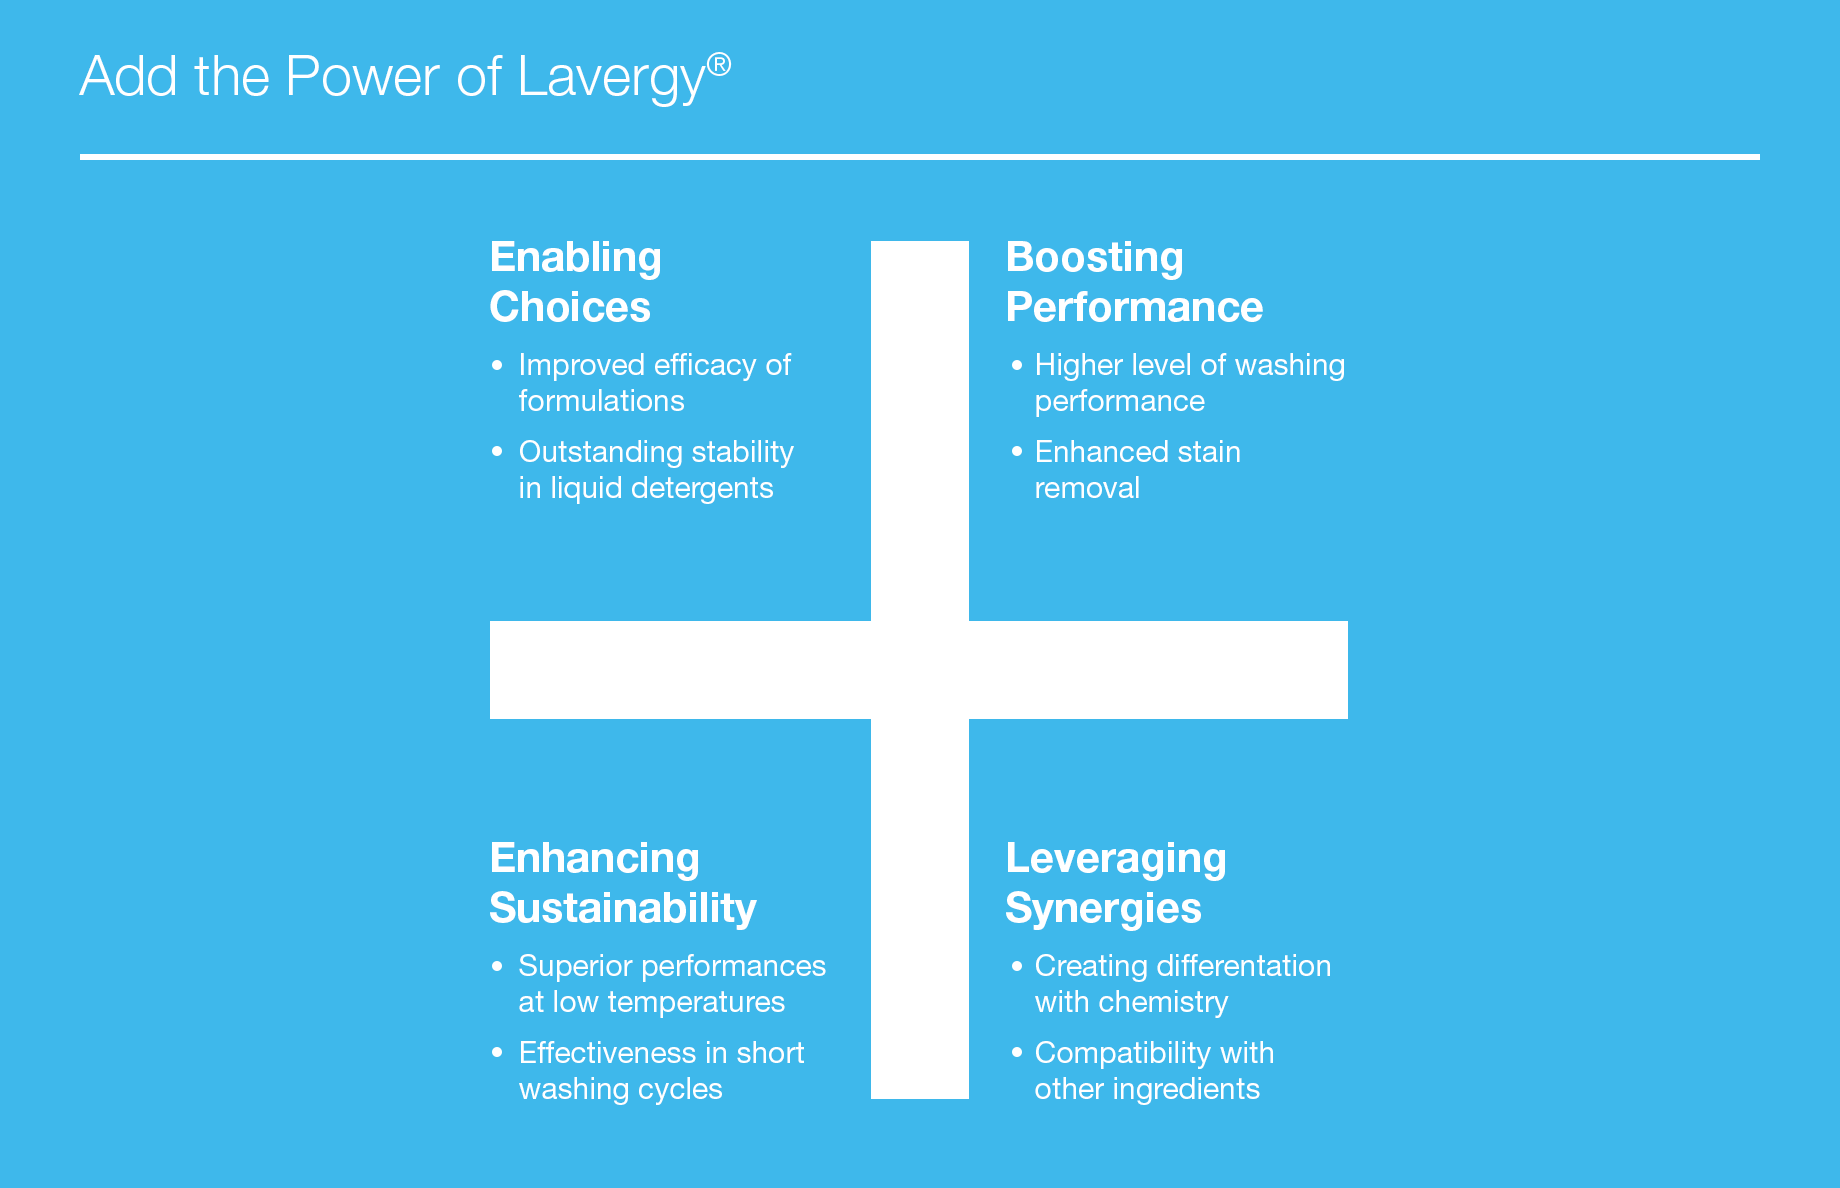 Add-The-Power-of-Lavergy